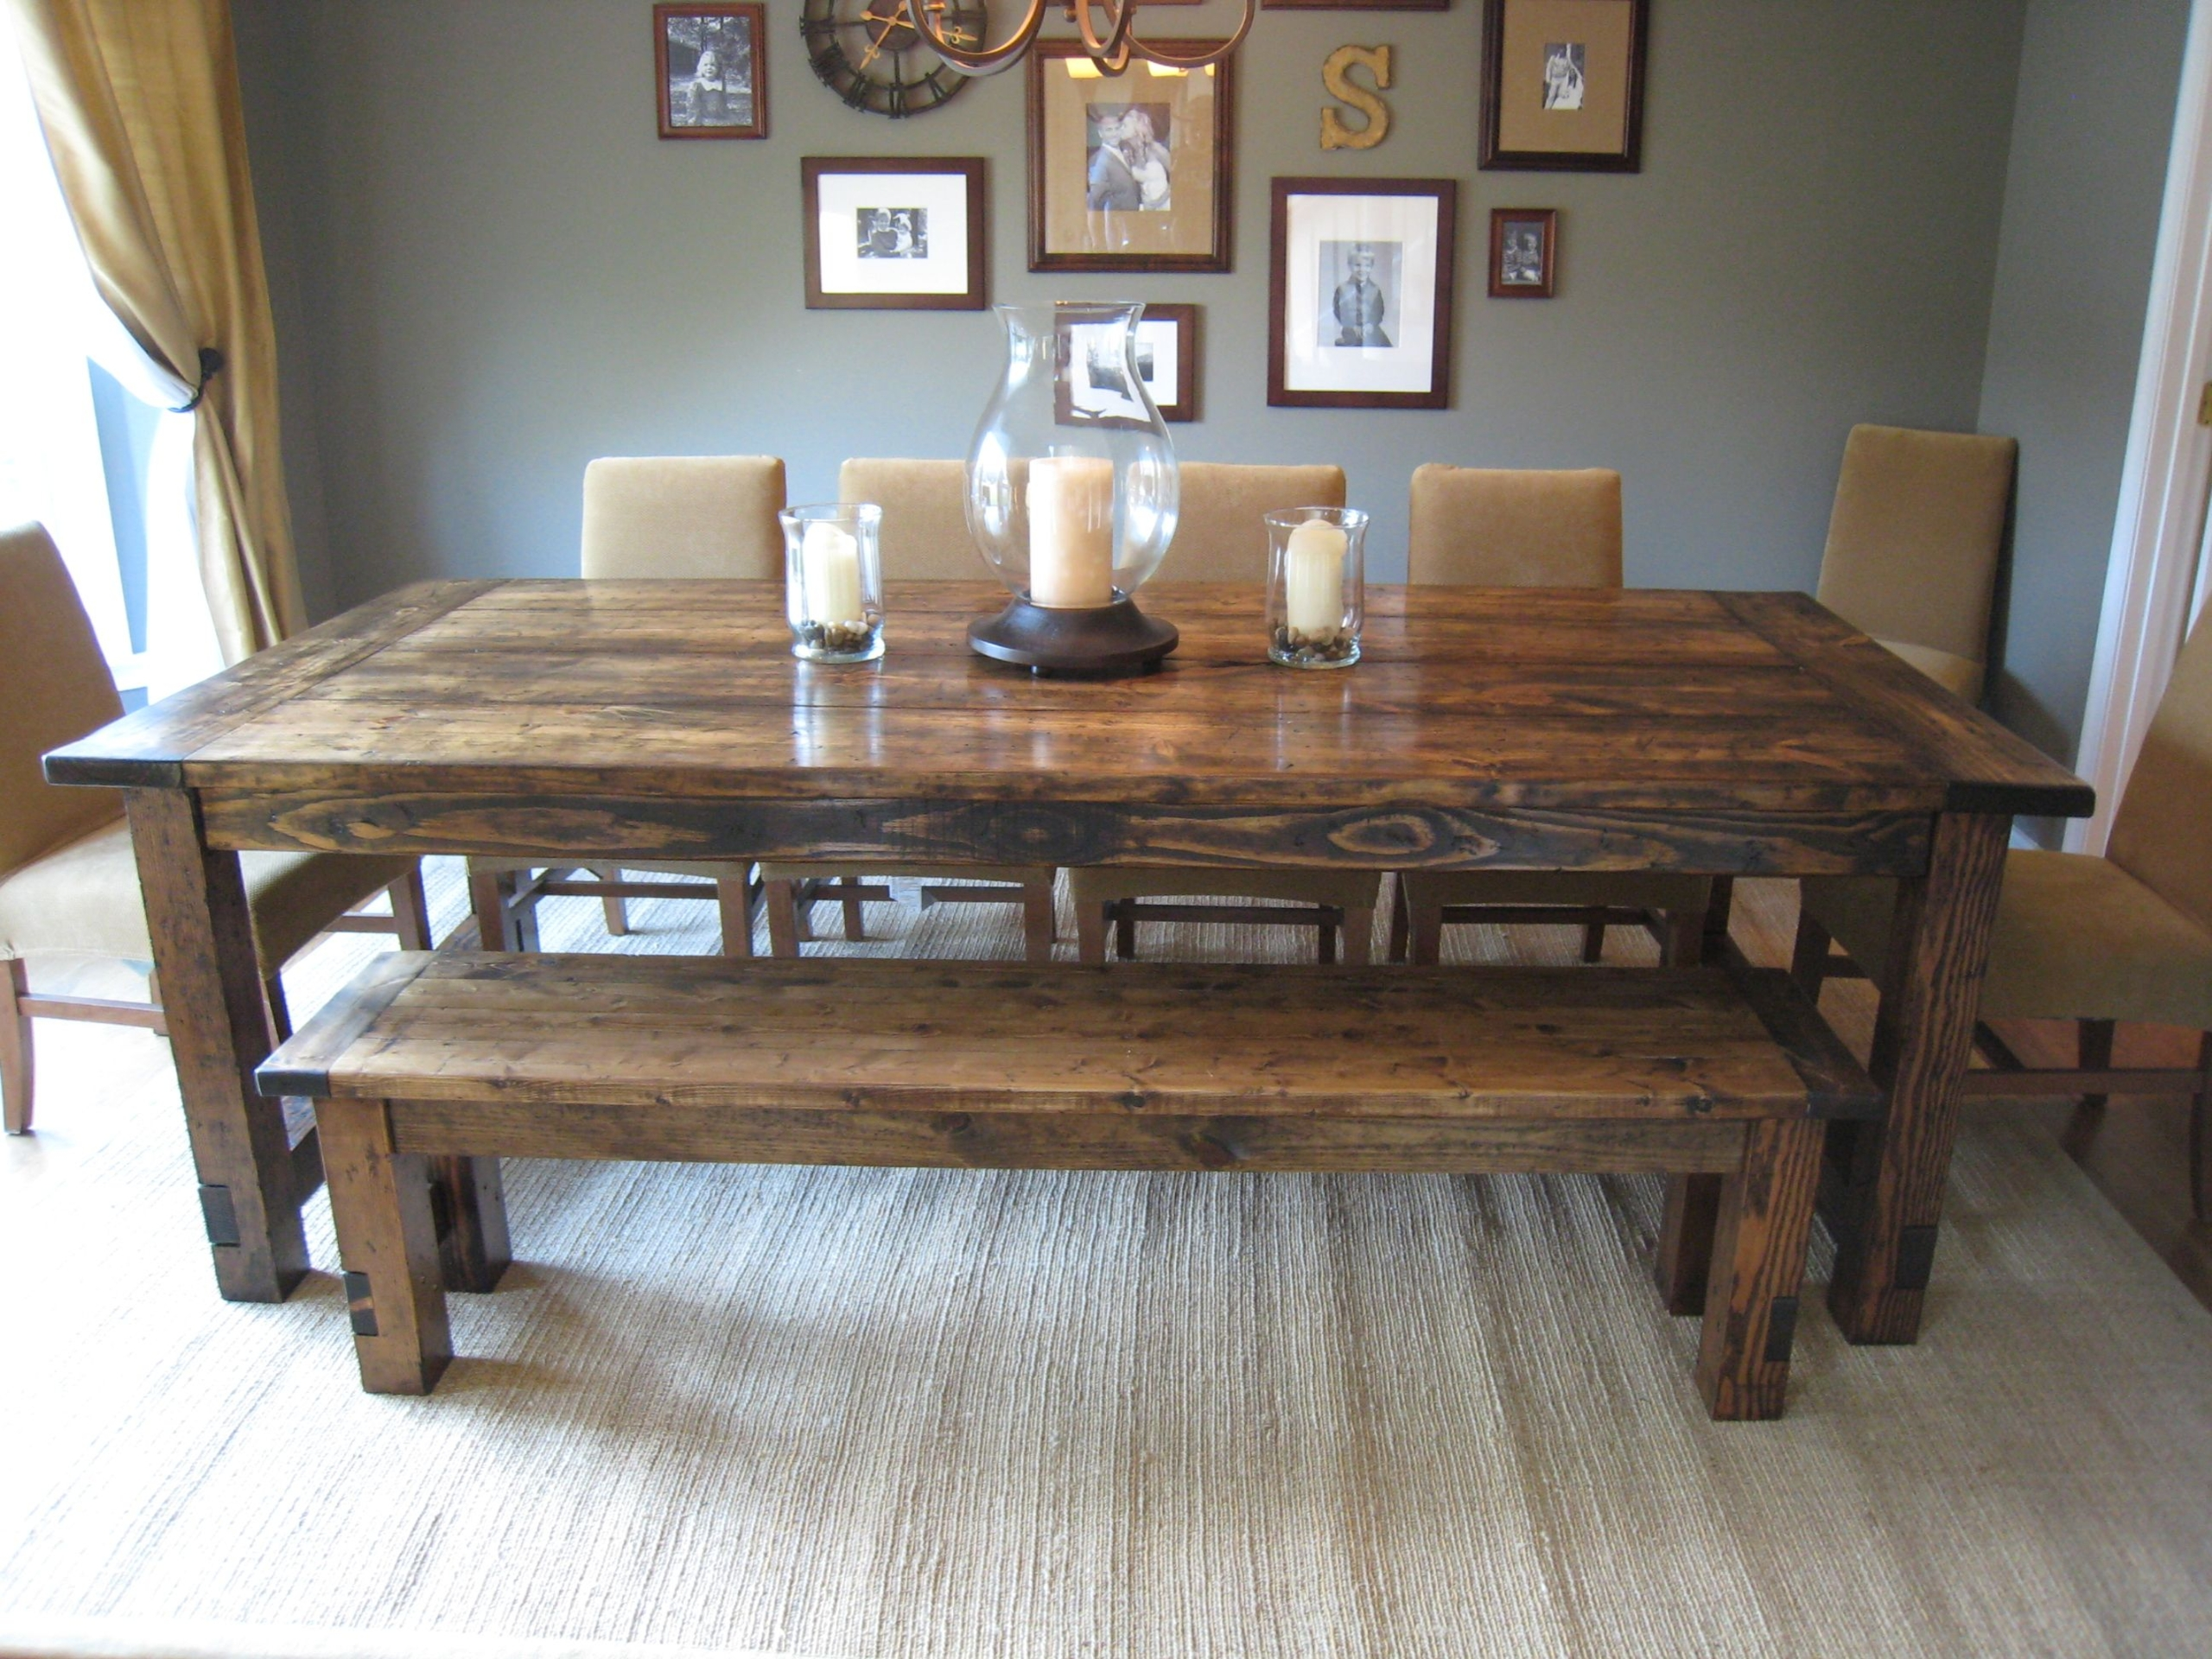 Groovy Farmhouse Dining Table With Bench Ideas On Foter Home Interior And Landscaping Ponolsignezvosmurscom